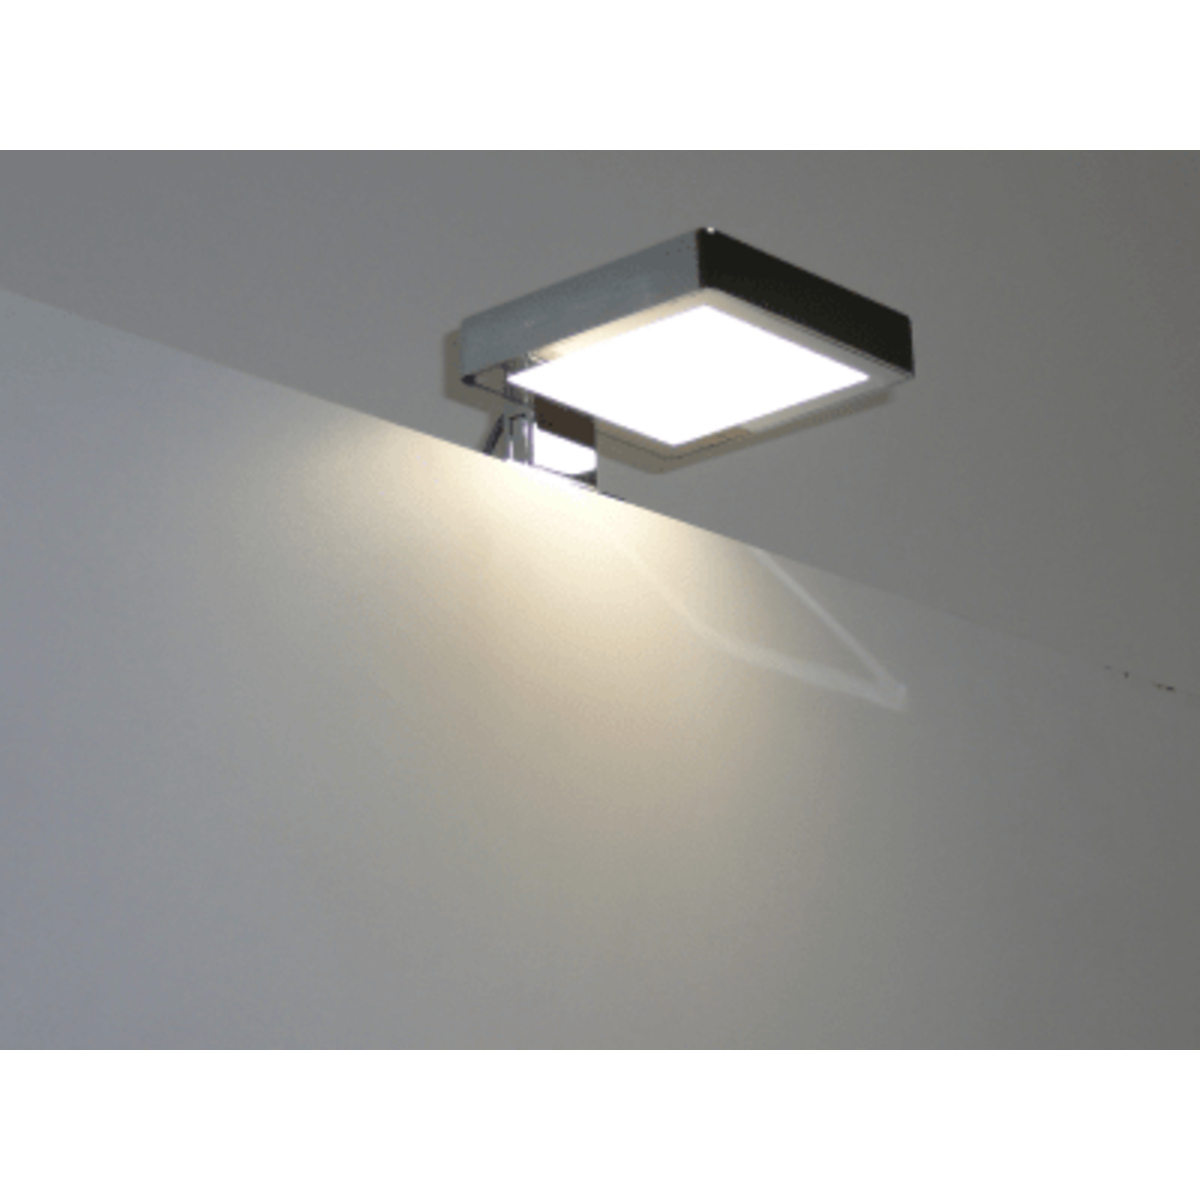 royal plaza freya led verlichting vspiegel spiegelkast 10x9x2 chroom sw158748